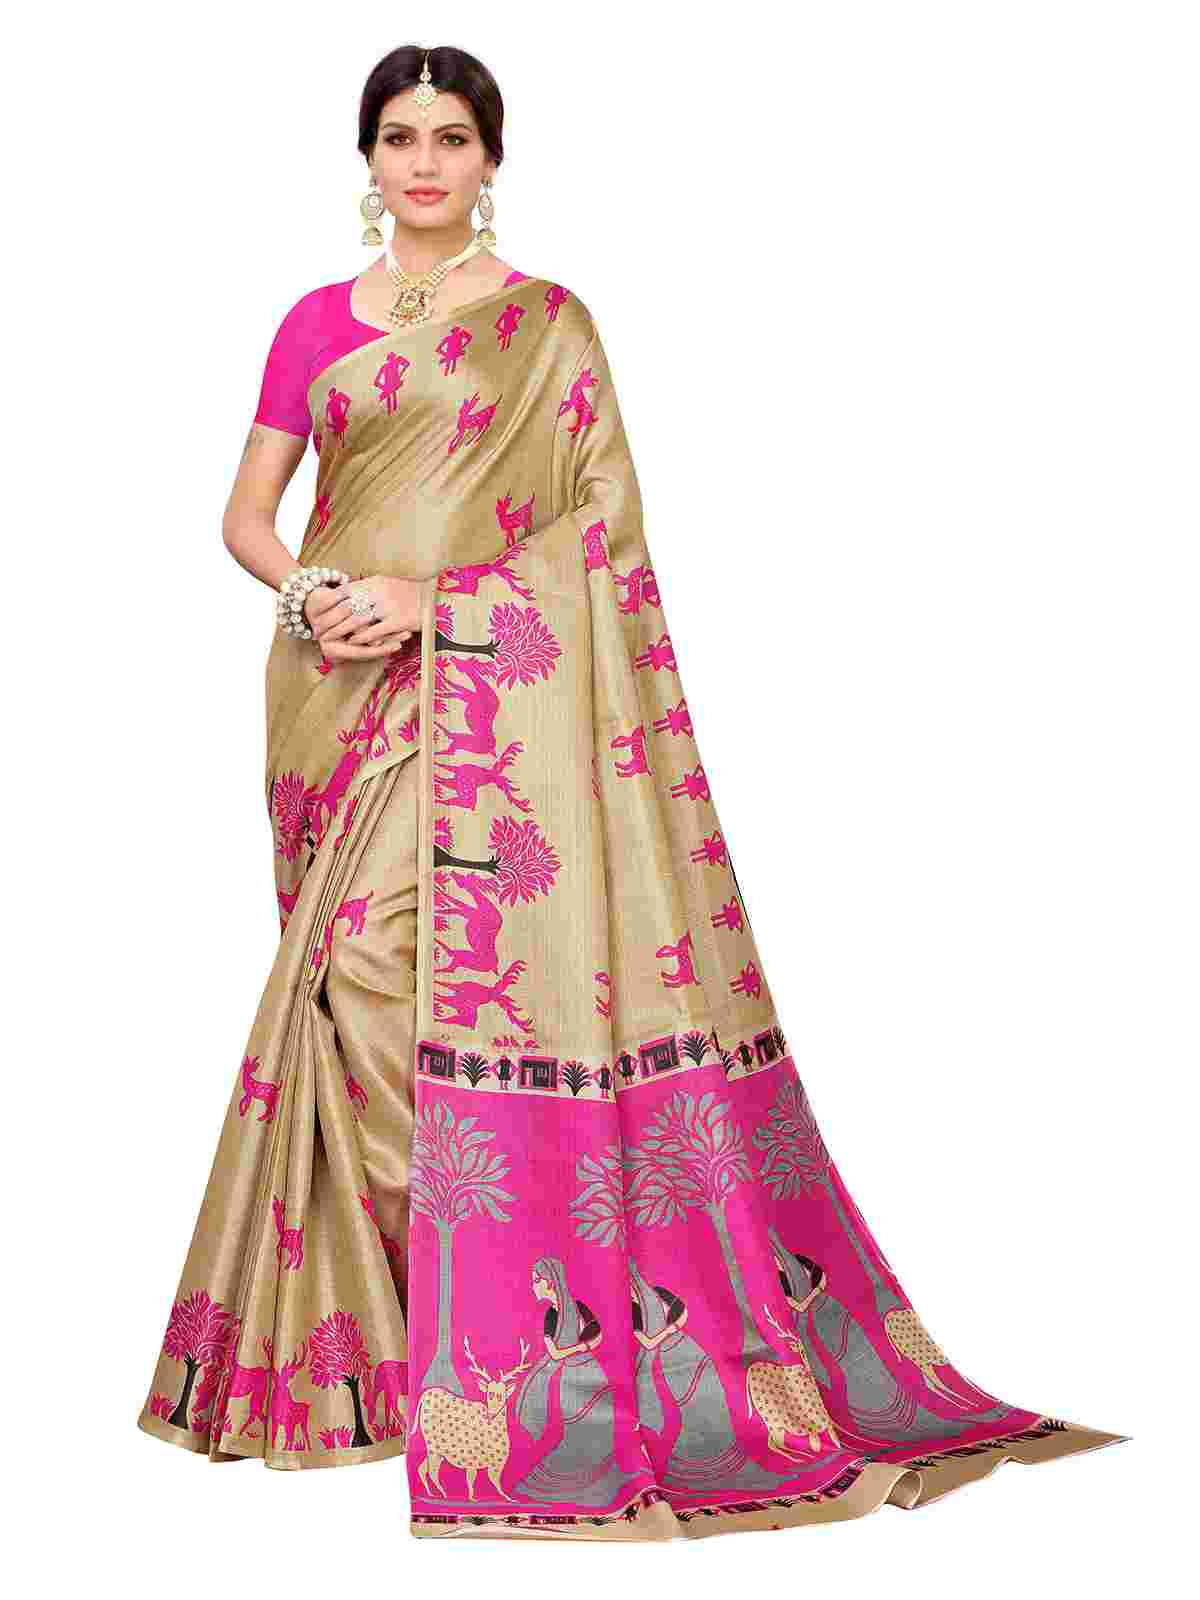 Prominent Beige-Pink Colored Casual Printed Khaadi Silk Saree With Unstitched Blouse